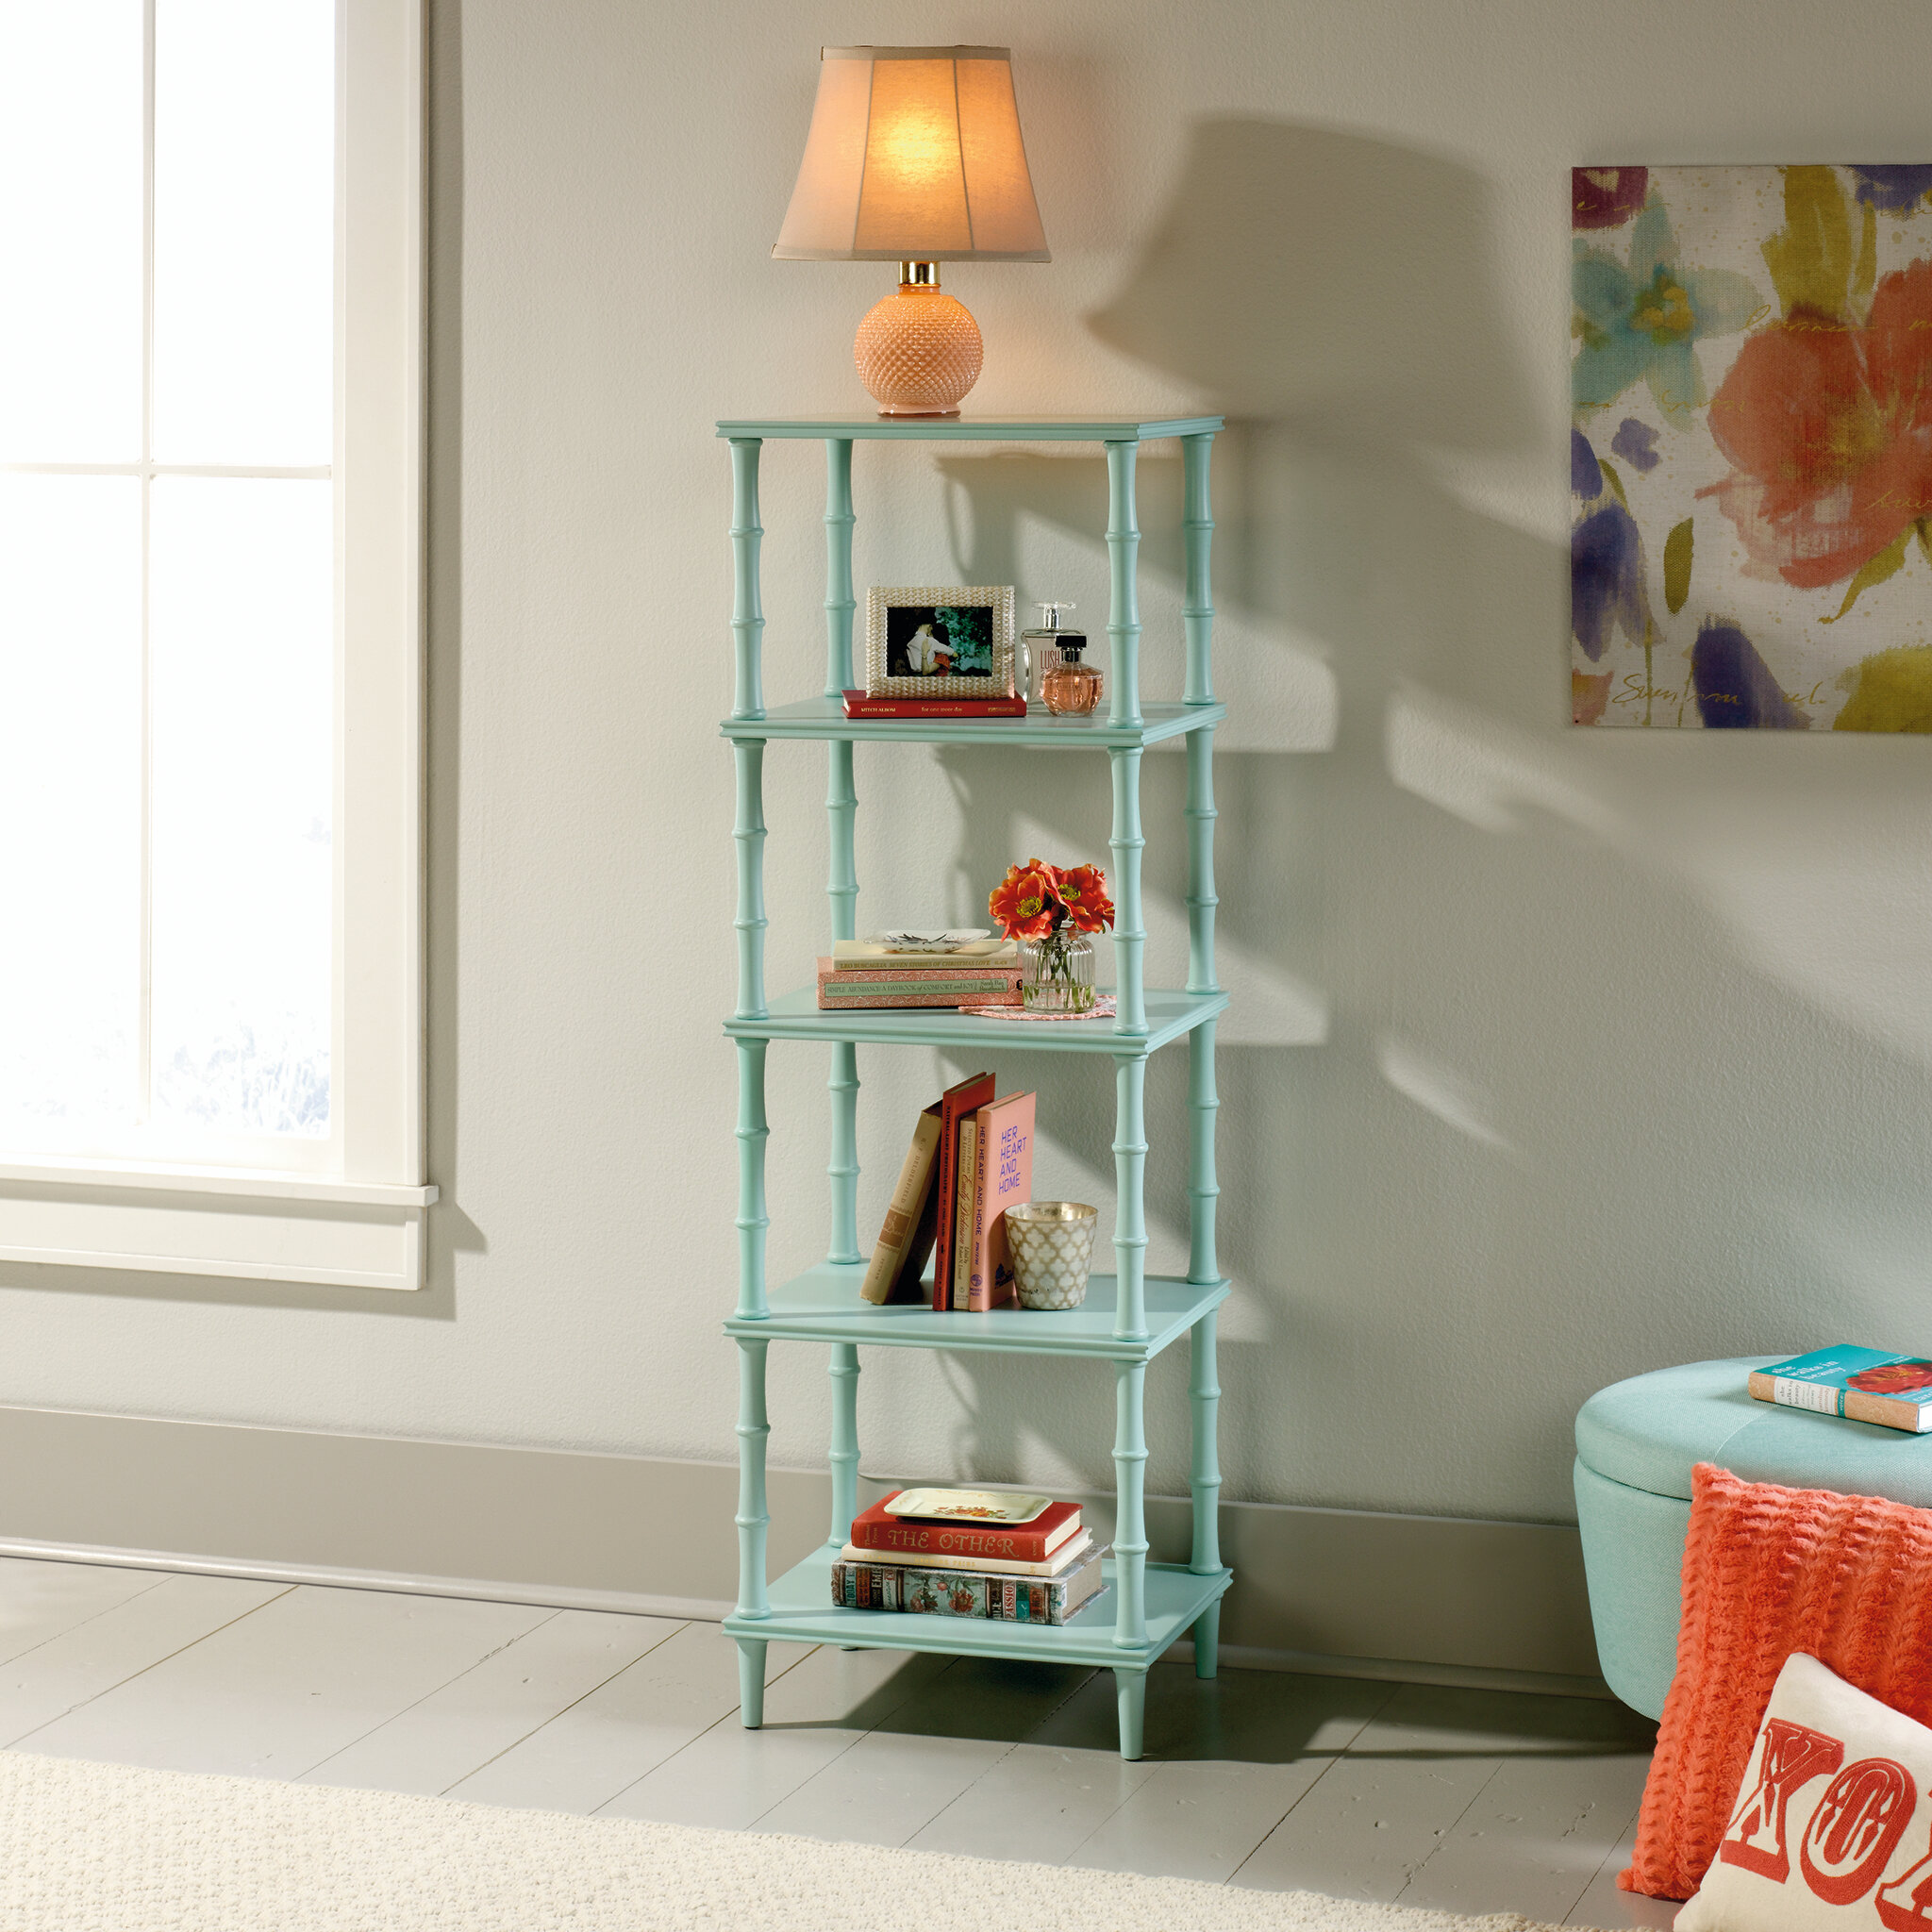 barrister storage doored sliding bookcase bello new inspirational glass shelf enterprises bookcases off audio door five mannheim tower of southern